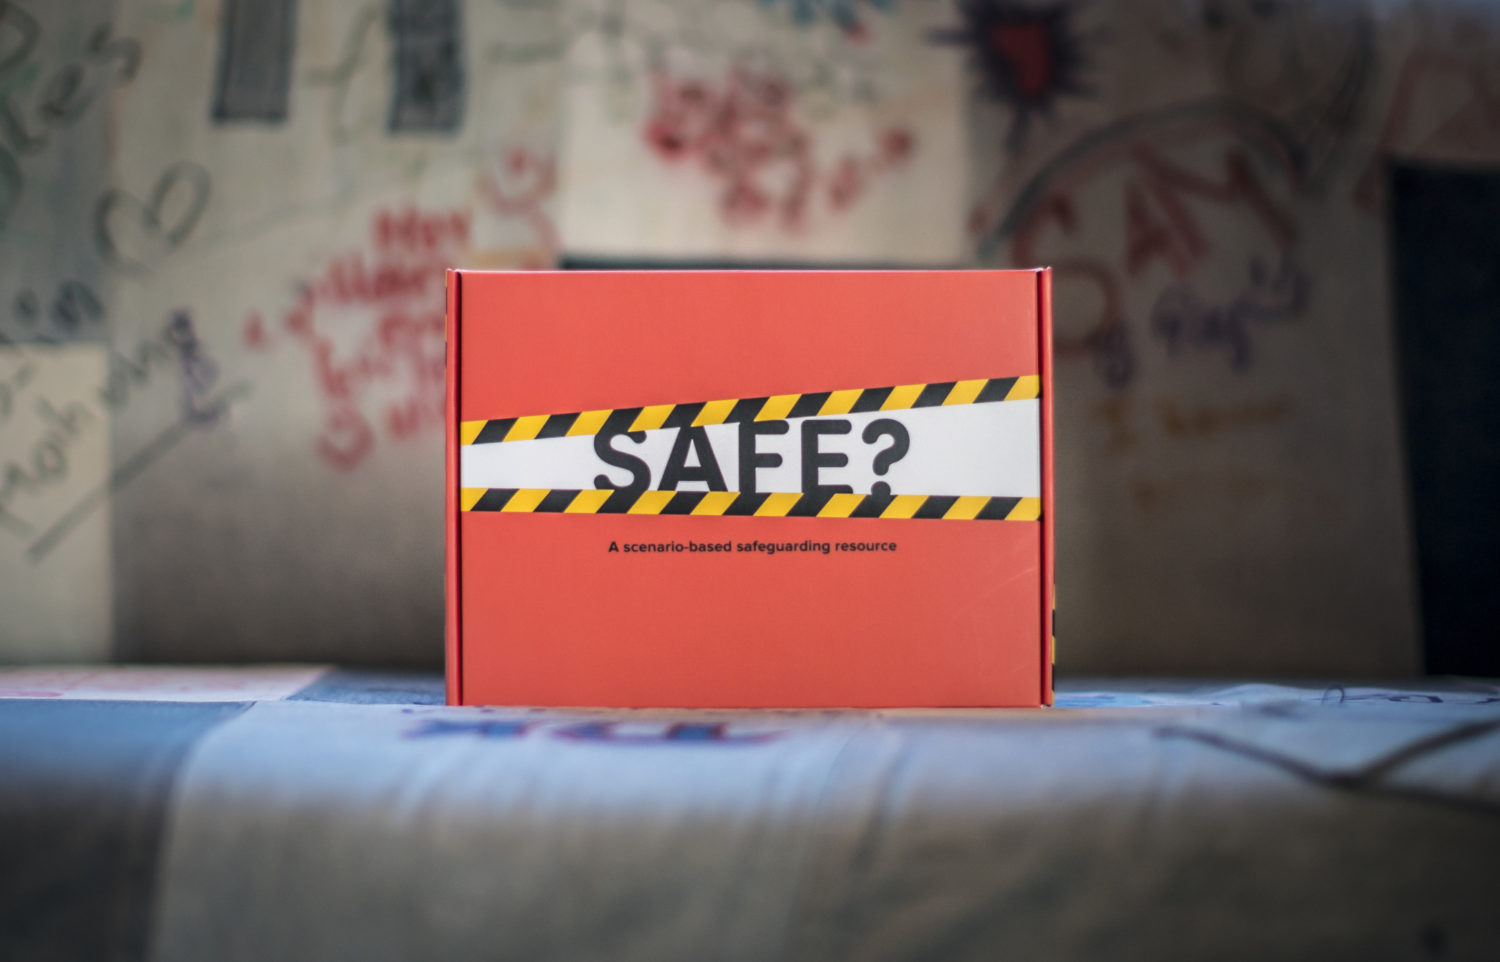 Safe? A new approach to safeguarding case studies